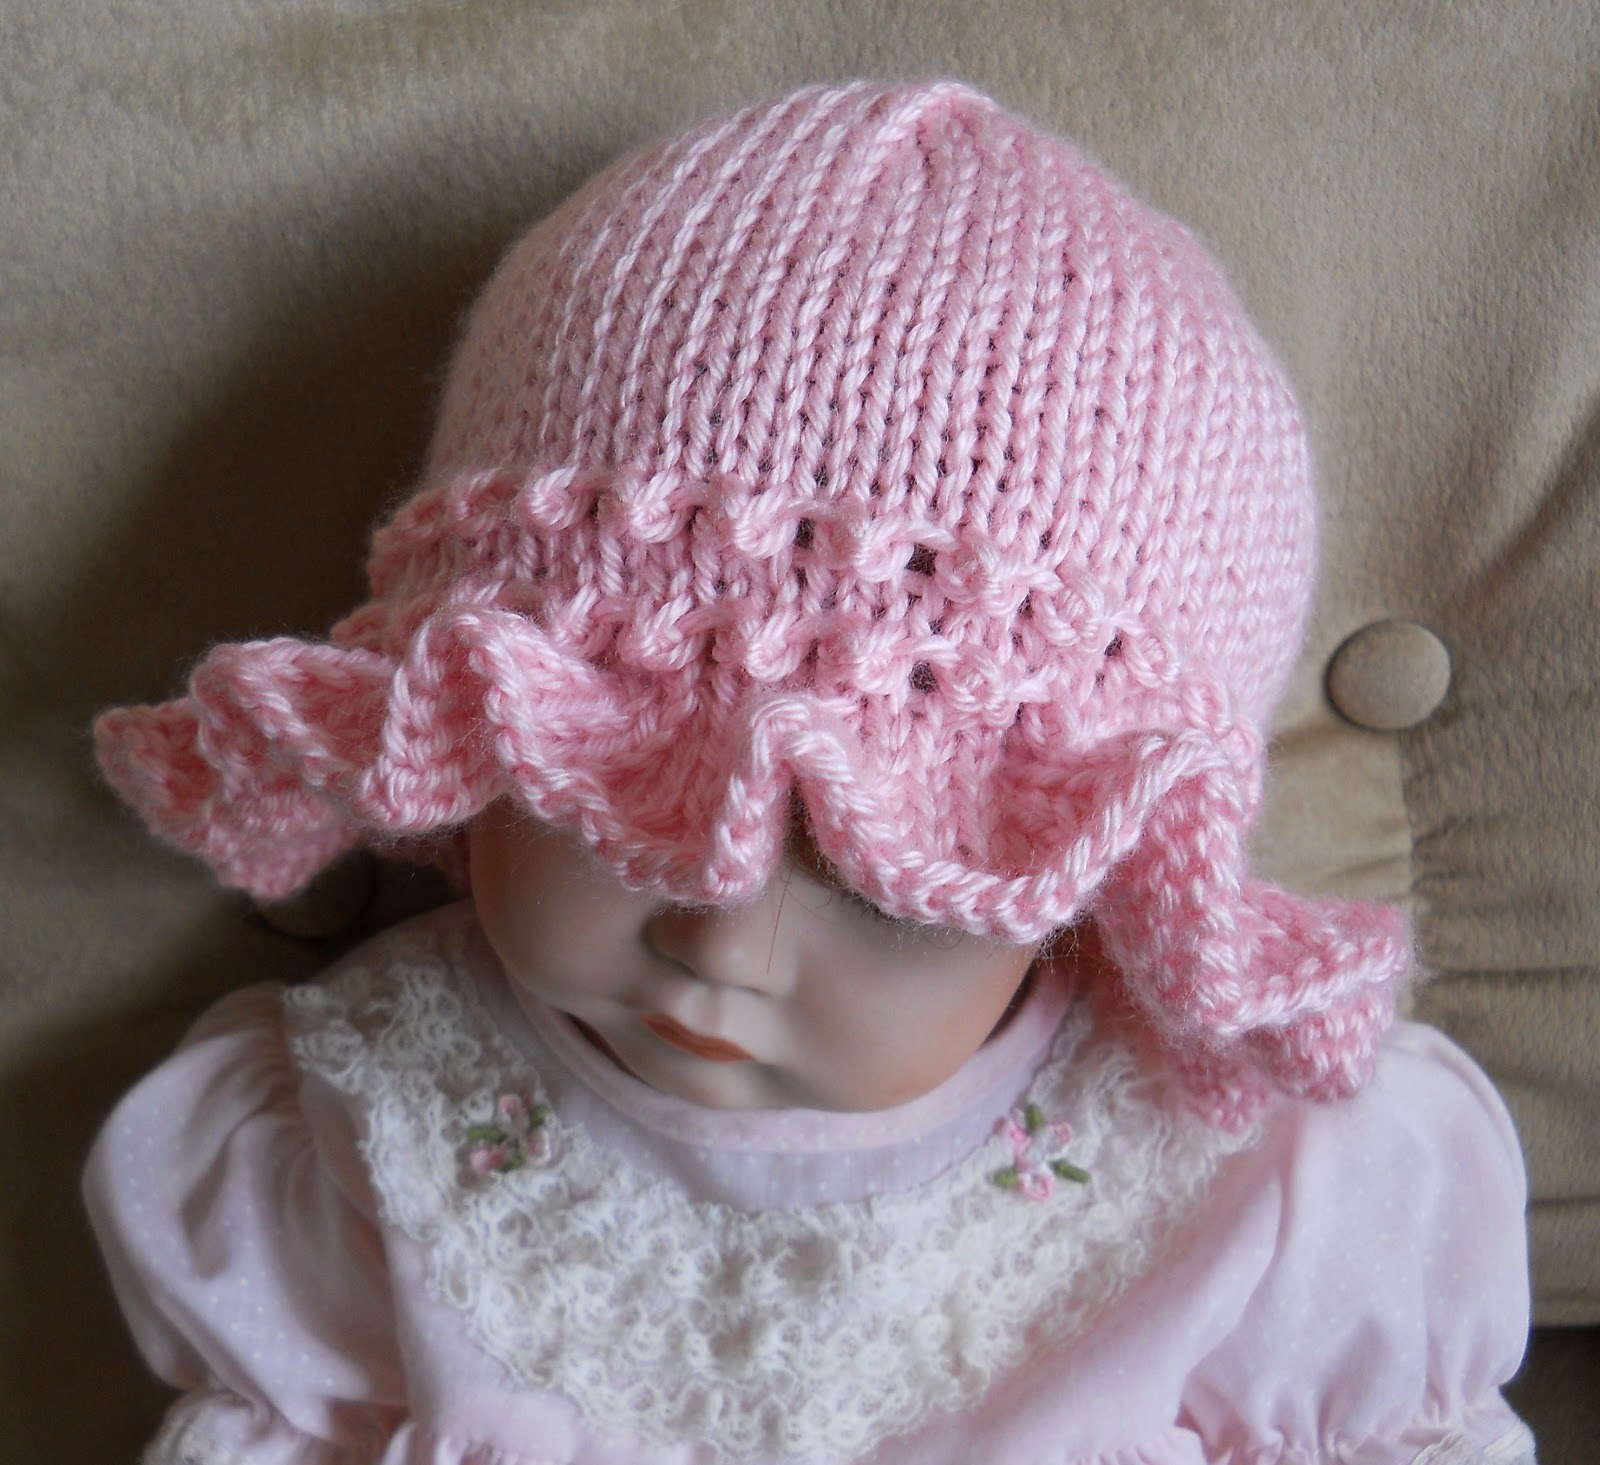 Knitting Pattern For Baby Hat With Brim : Suzies Stuff: RUFFLE BRIM CAP